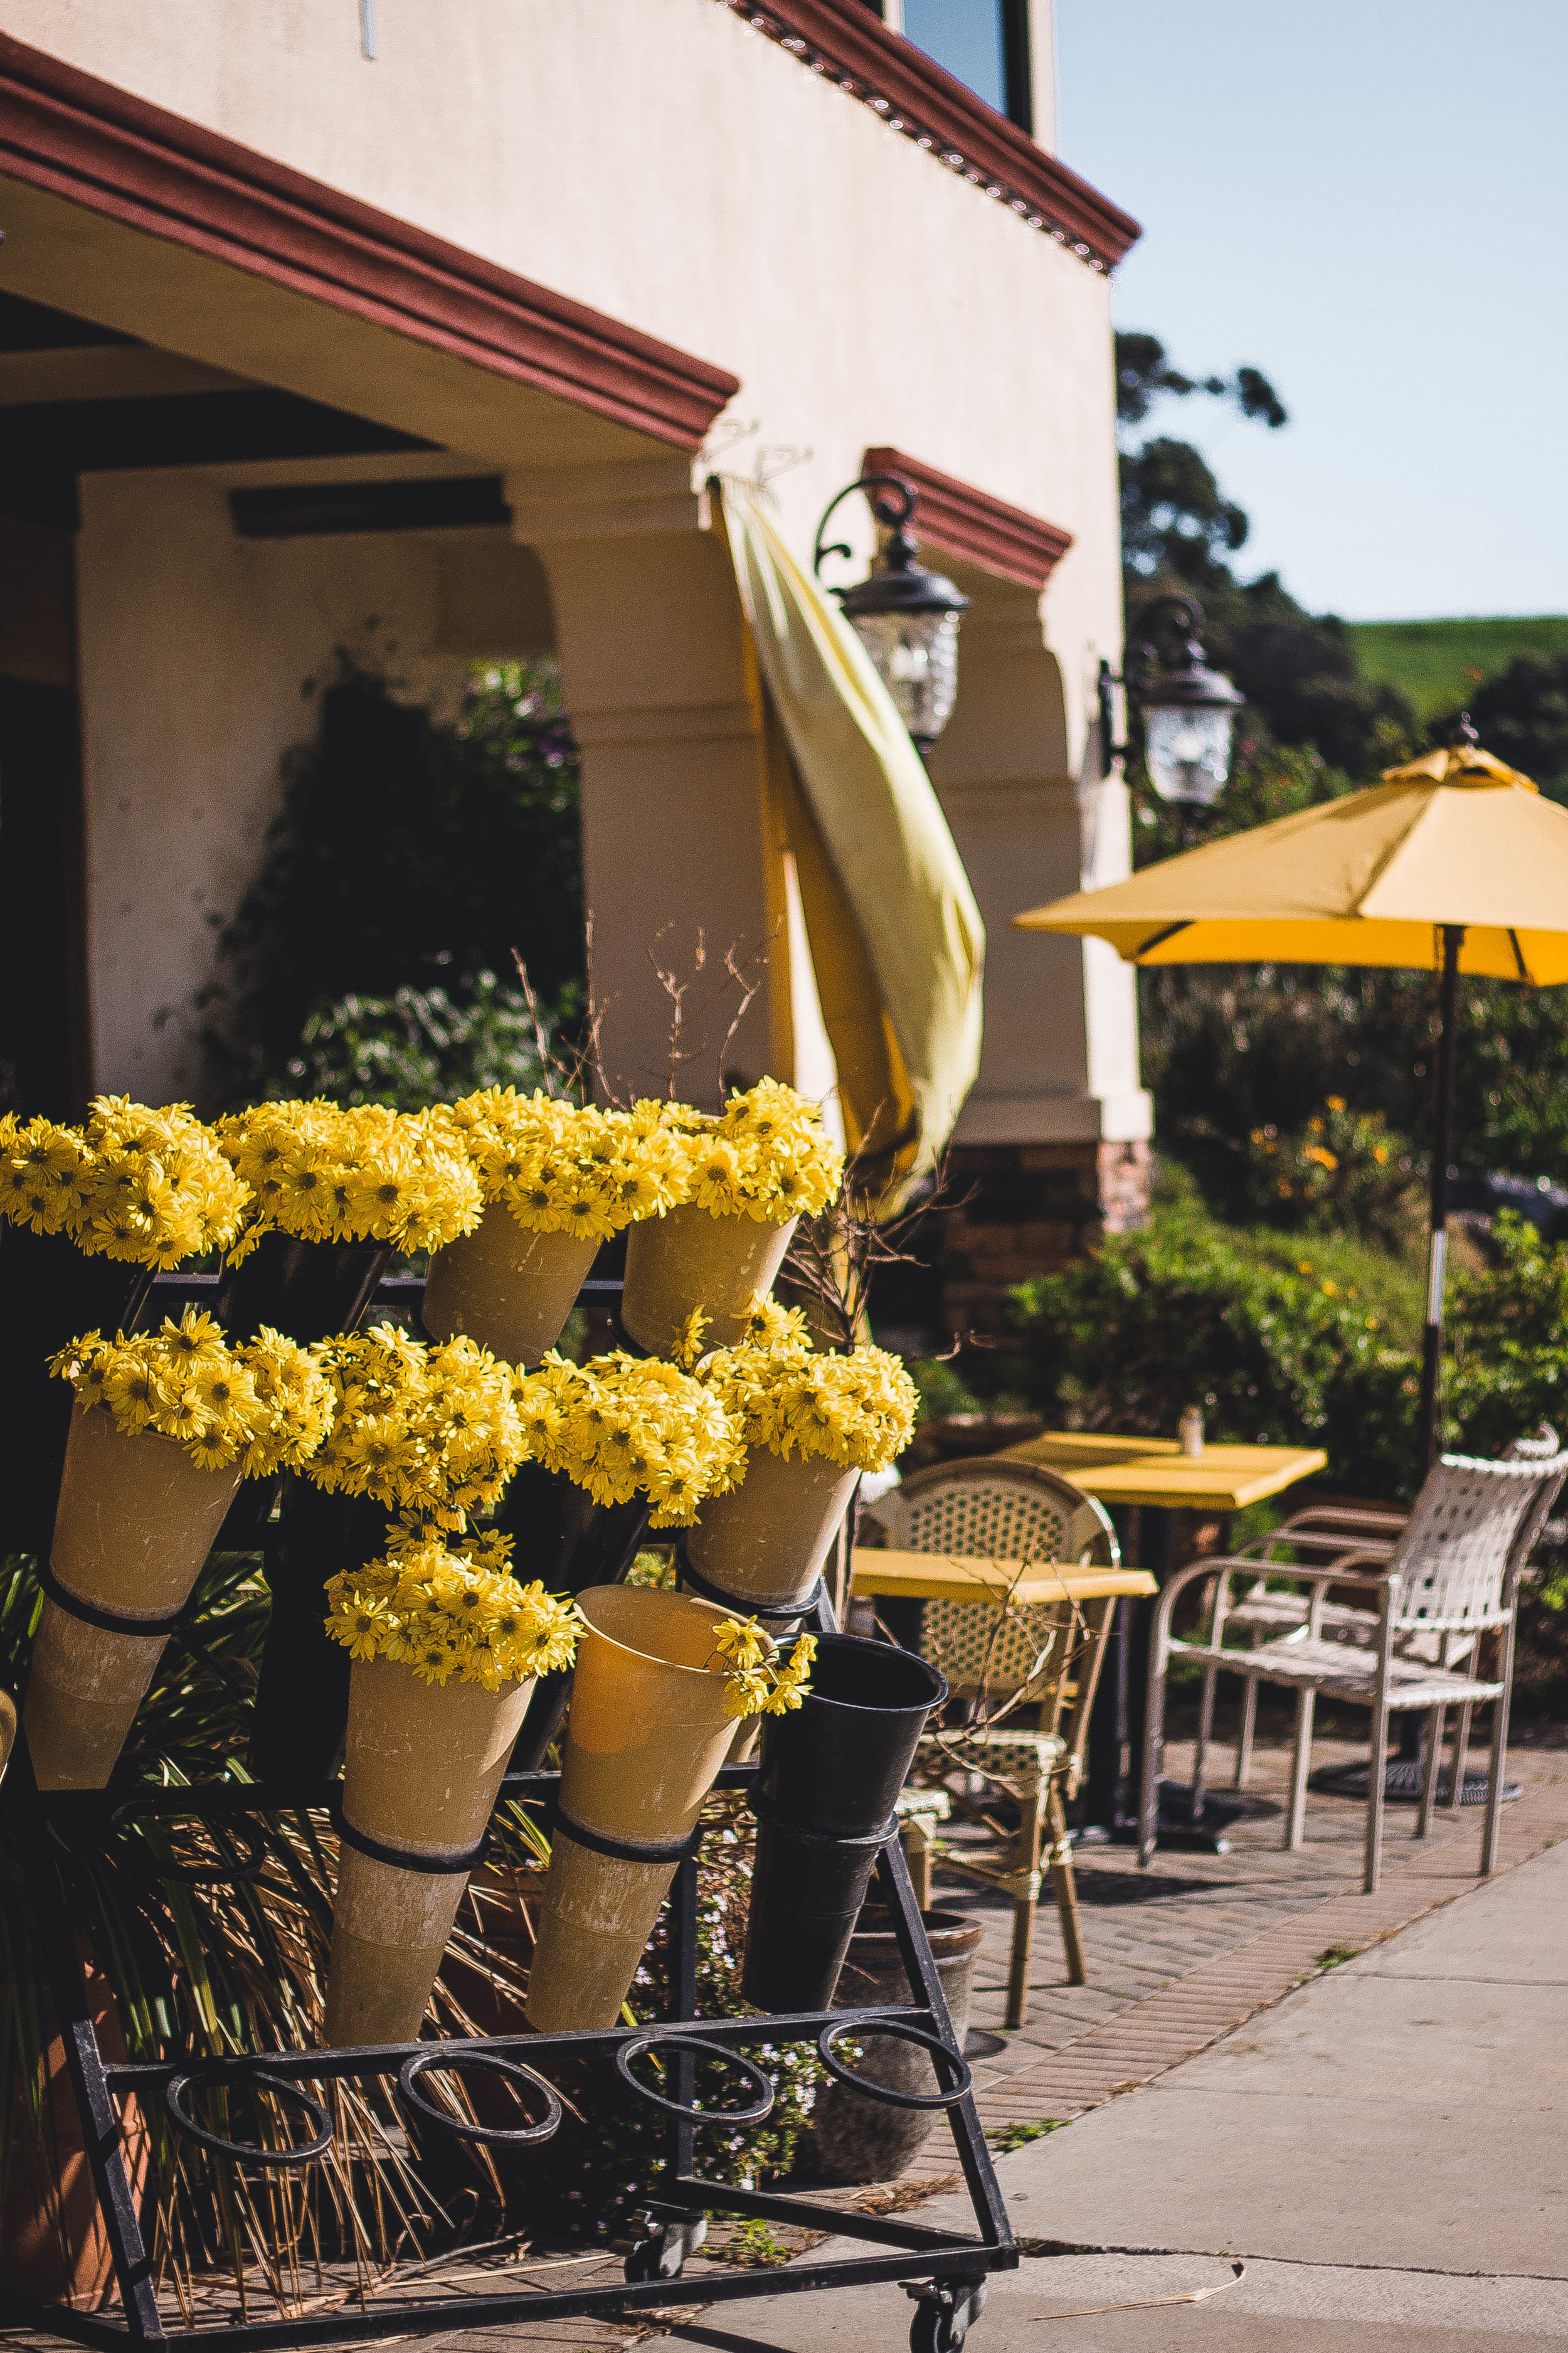 The Yellow Vase Bakery Cafe in Palos Verdes | by fit for the soul